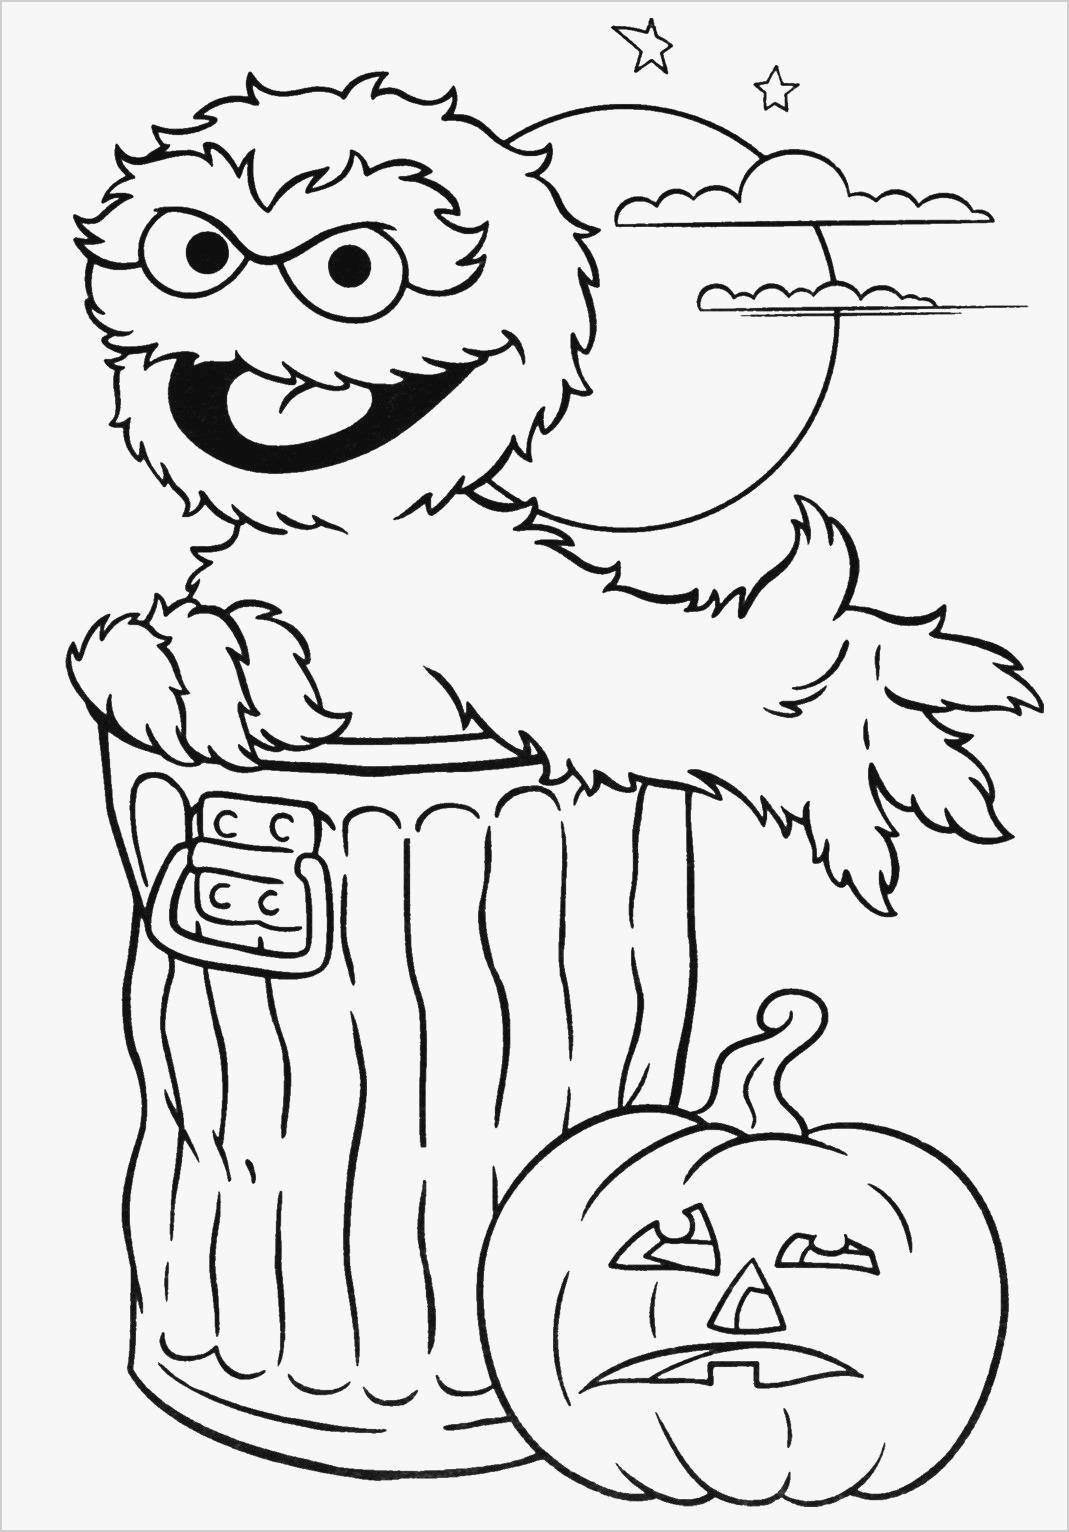 sesame street printable coloring pages Collection-Download · Cookie Monster Tubing Coloring Pages 2-s